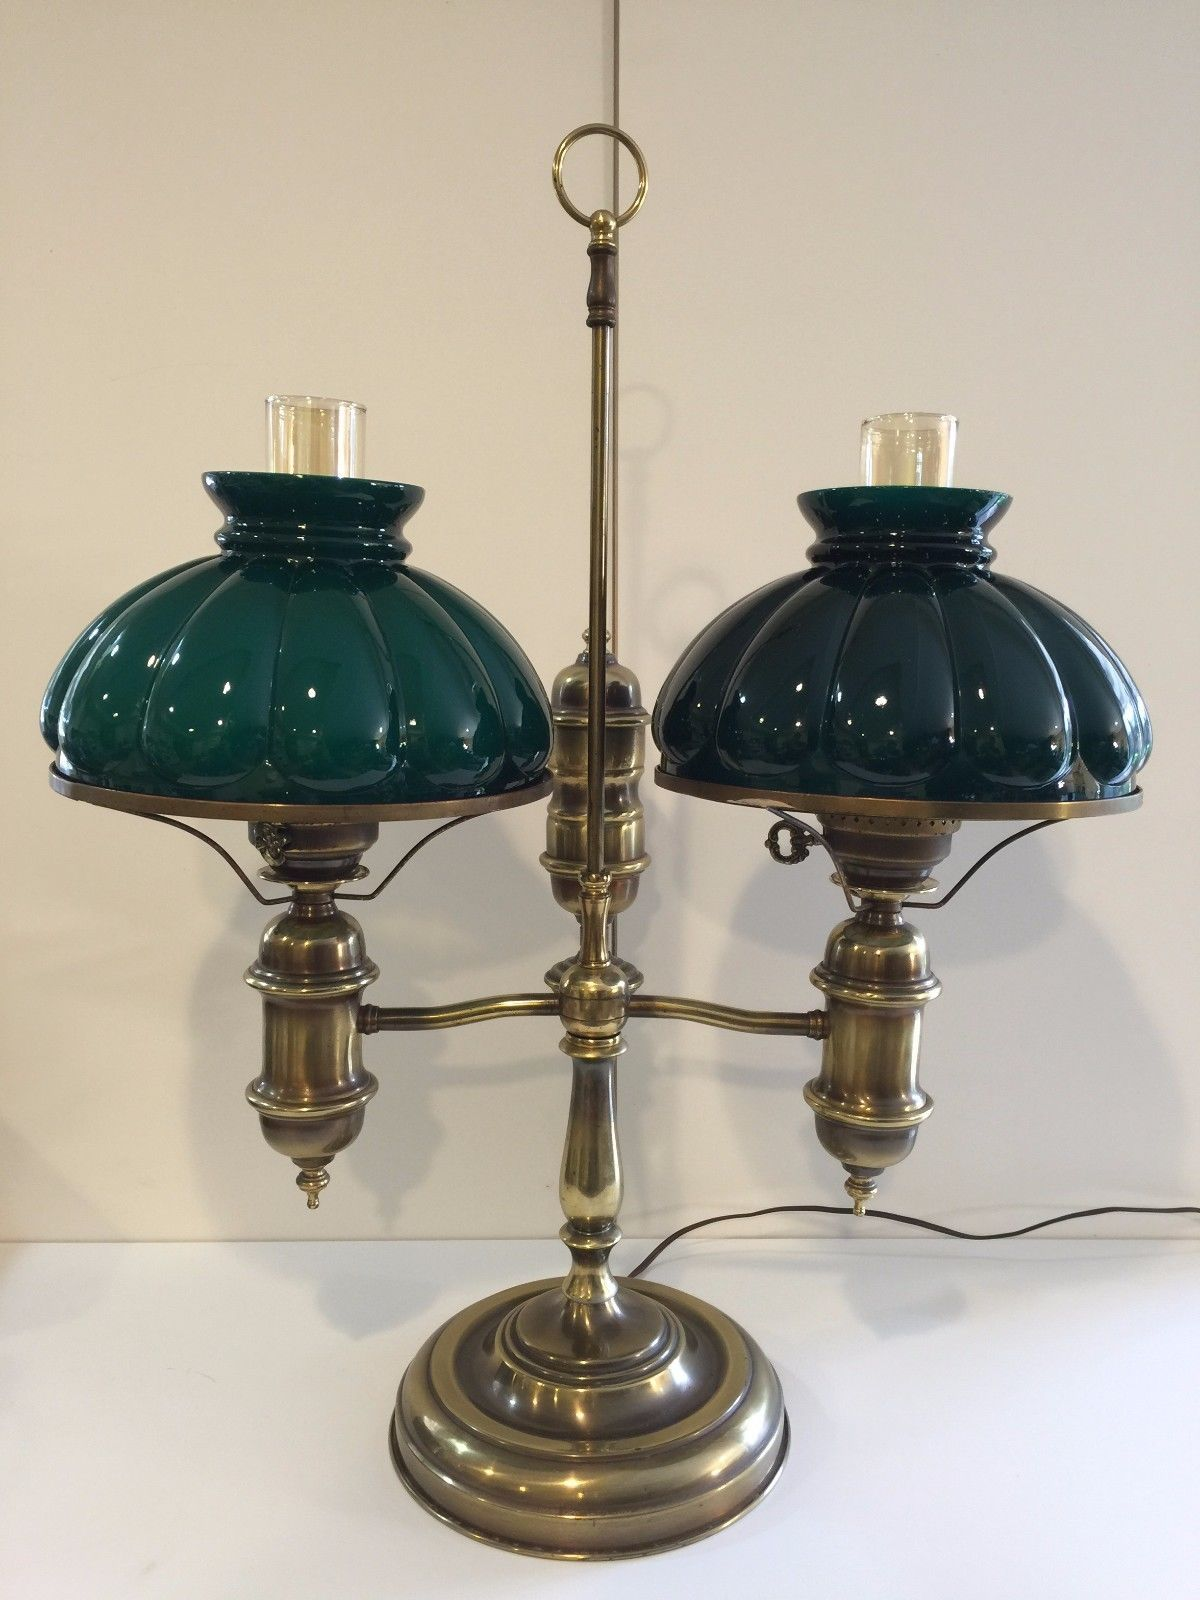 Antique Large Double Brass Student Lamp wGreen Shades Electrified – Desk Lamp Green Shade